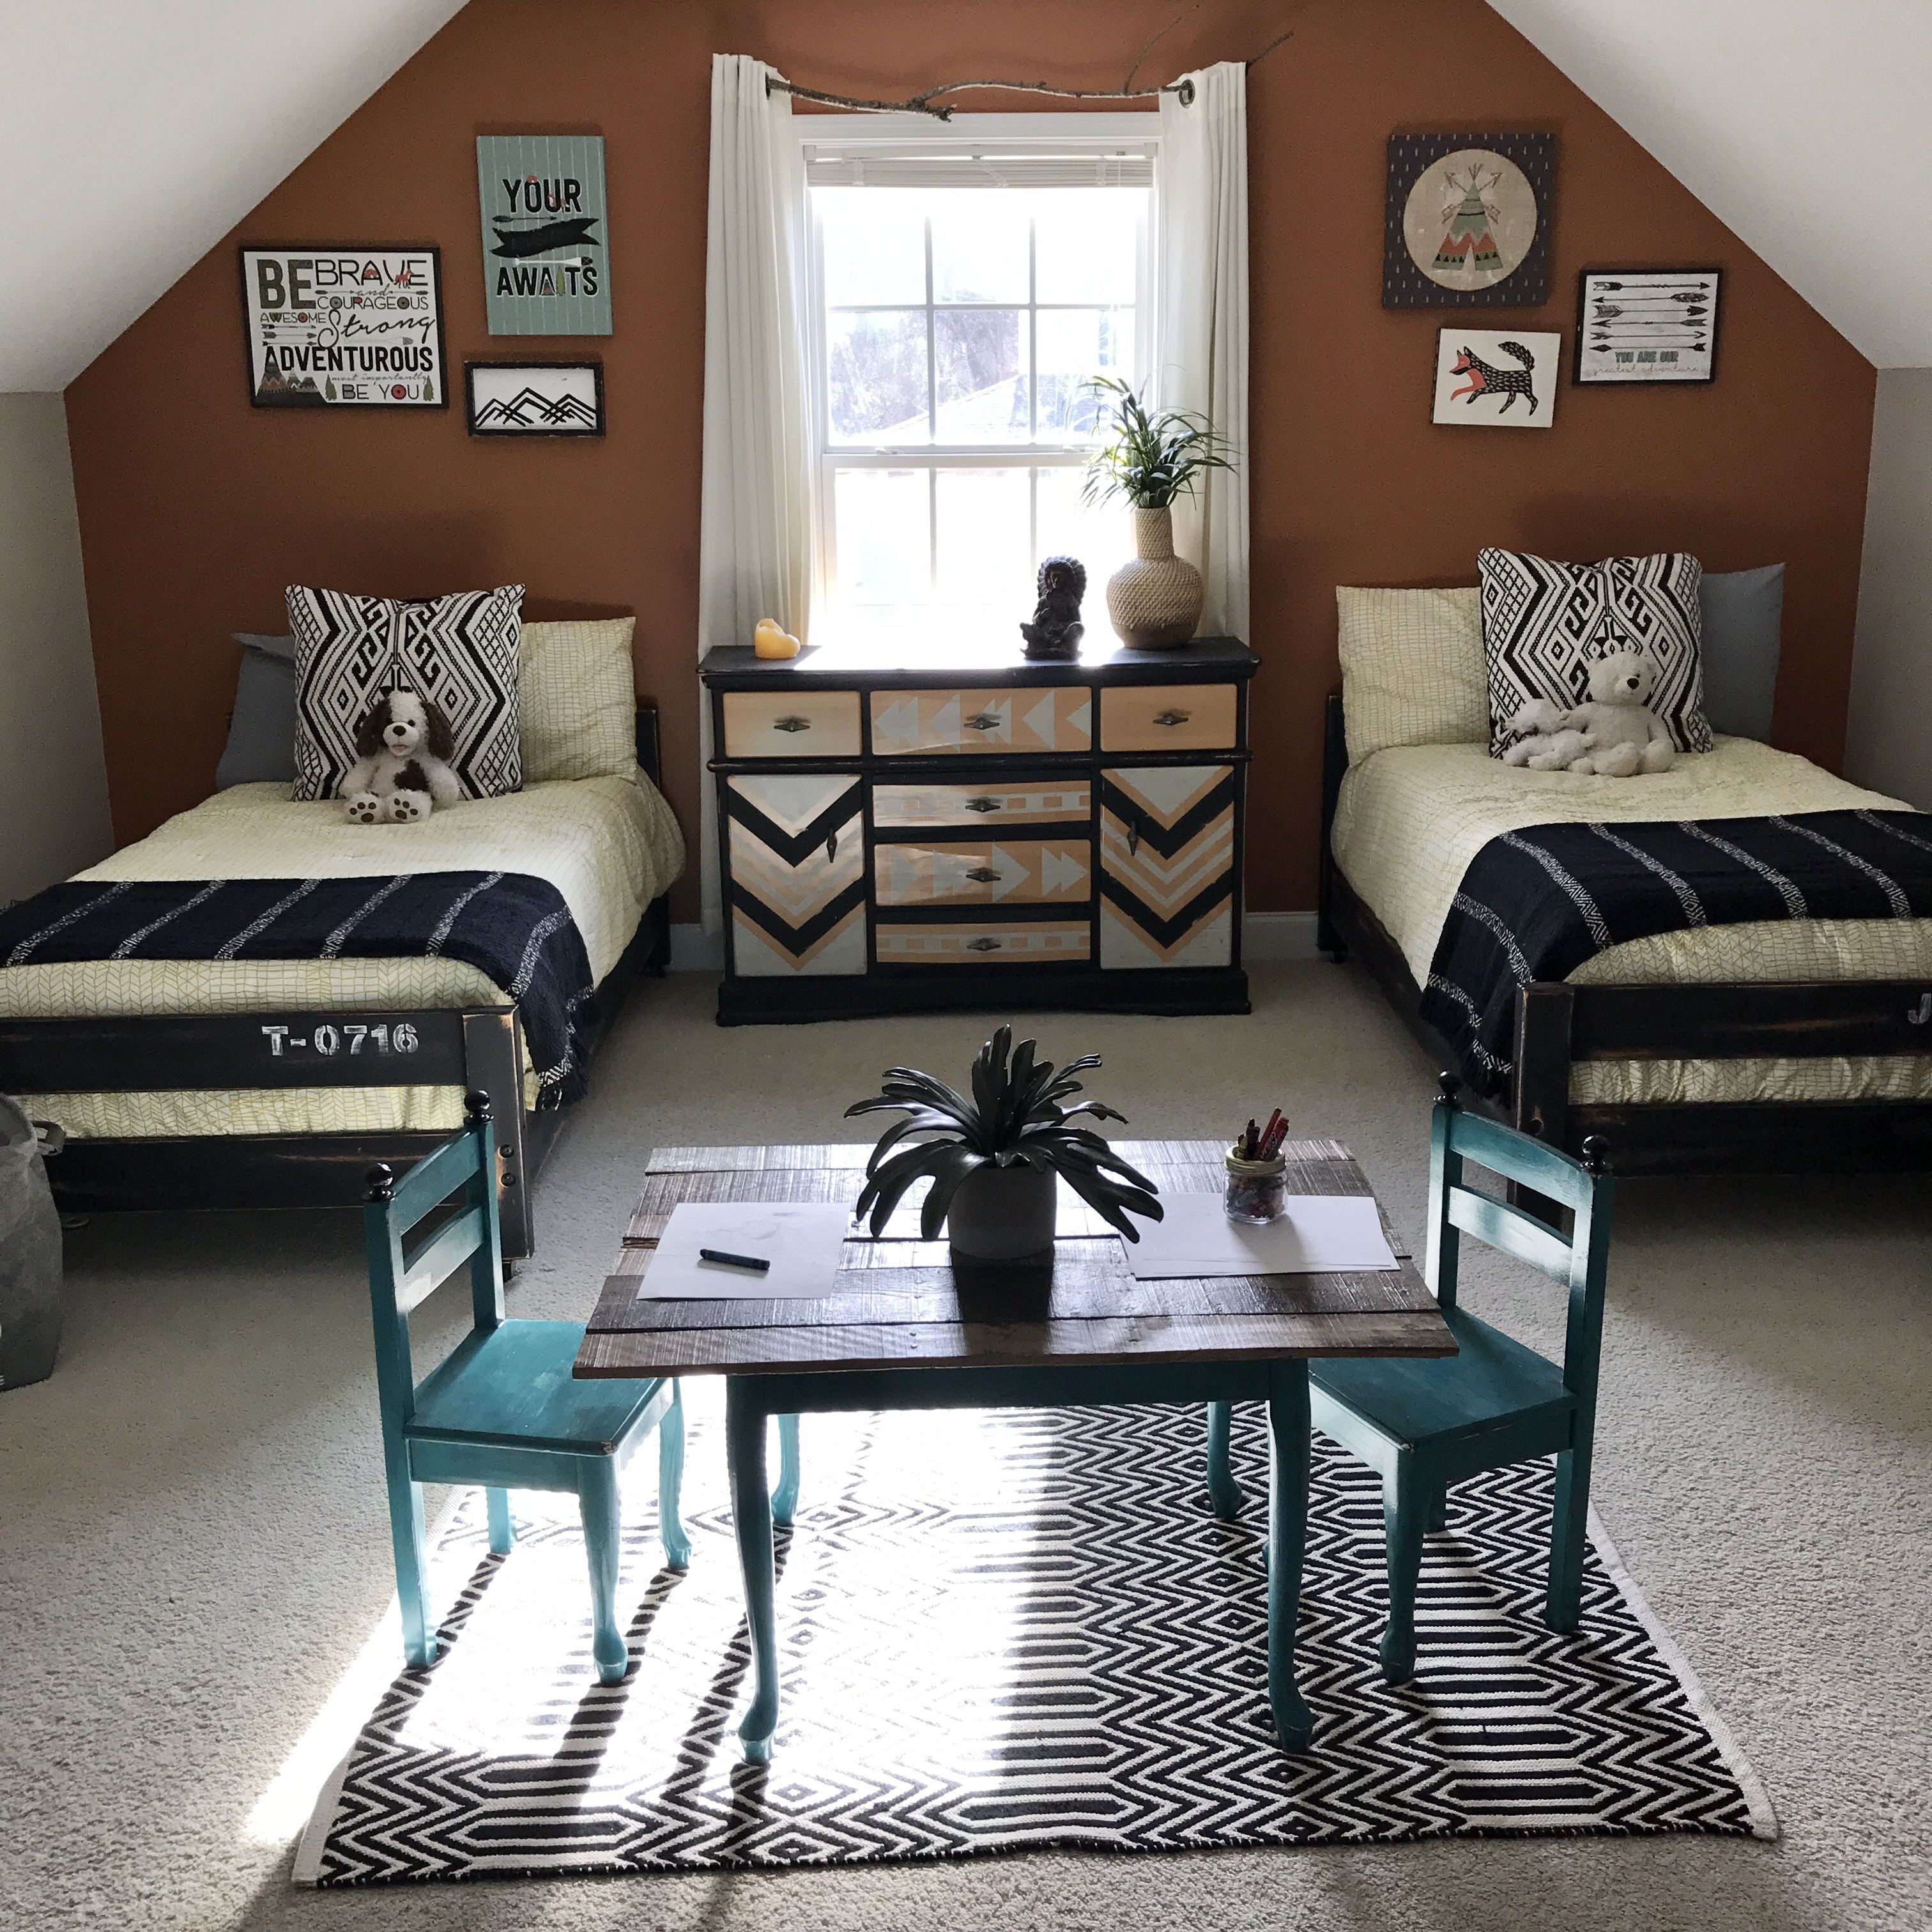 boho bedroom for boys with aztec prints, black and white decor